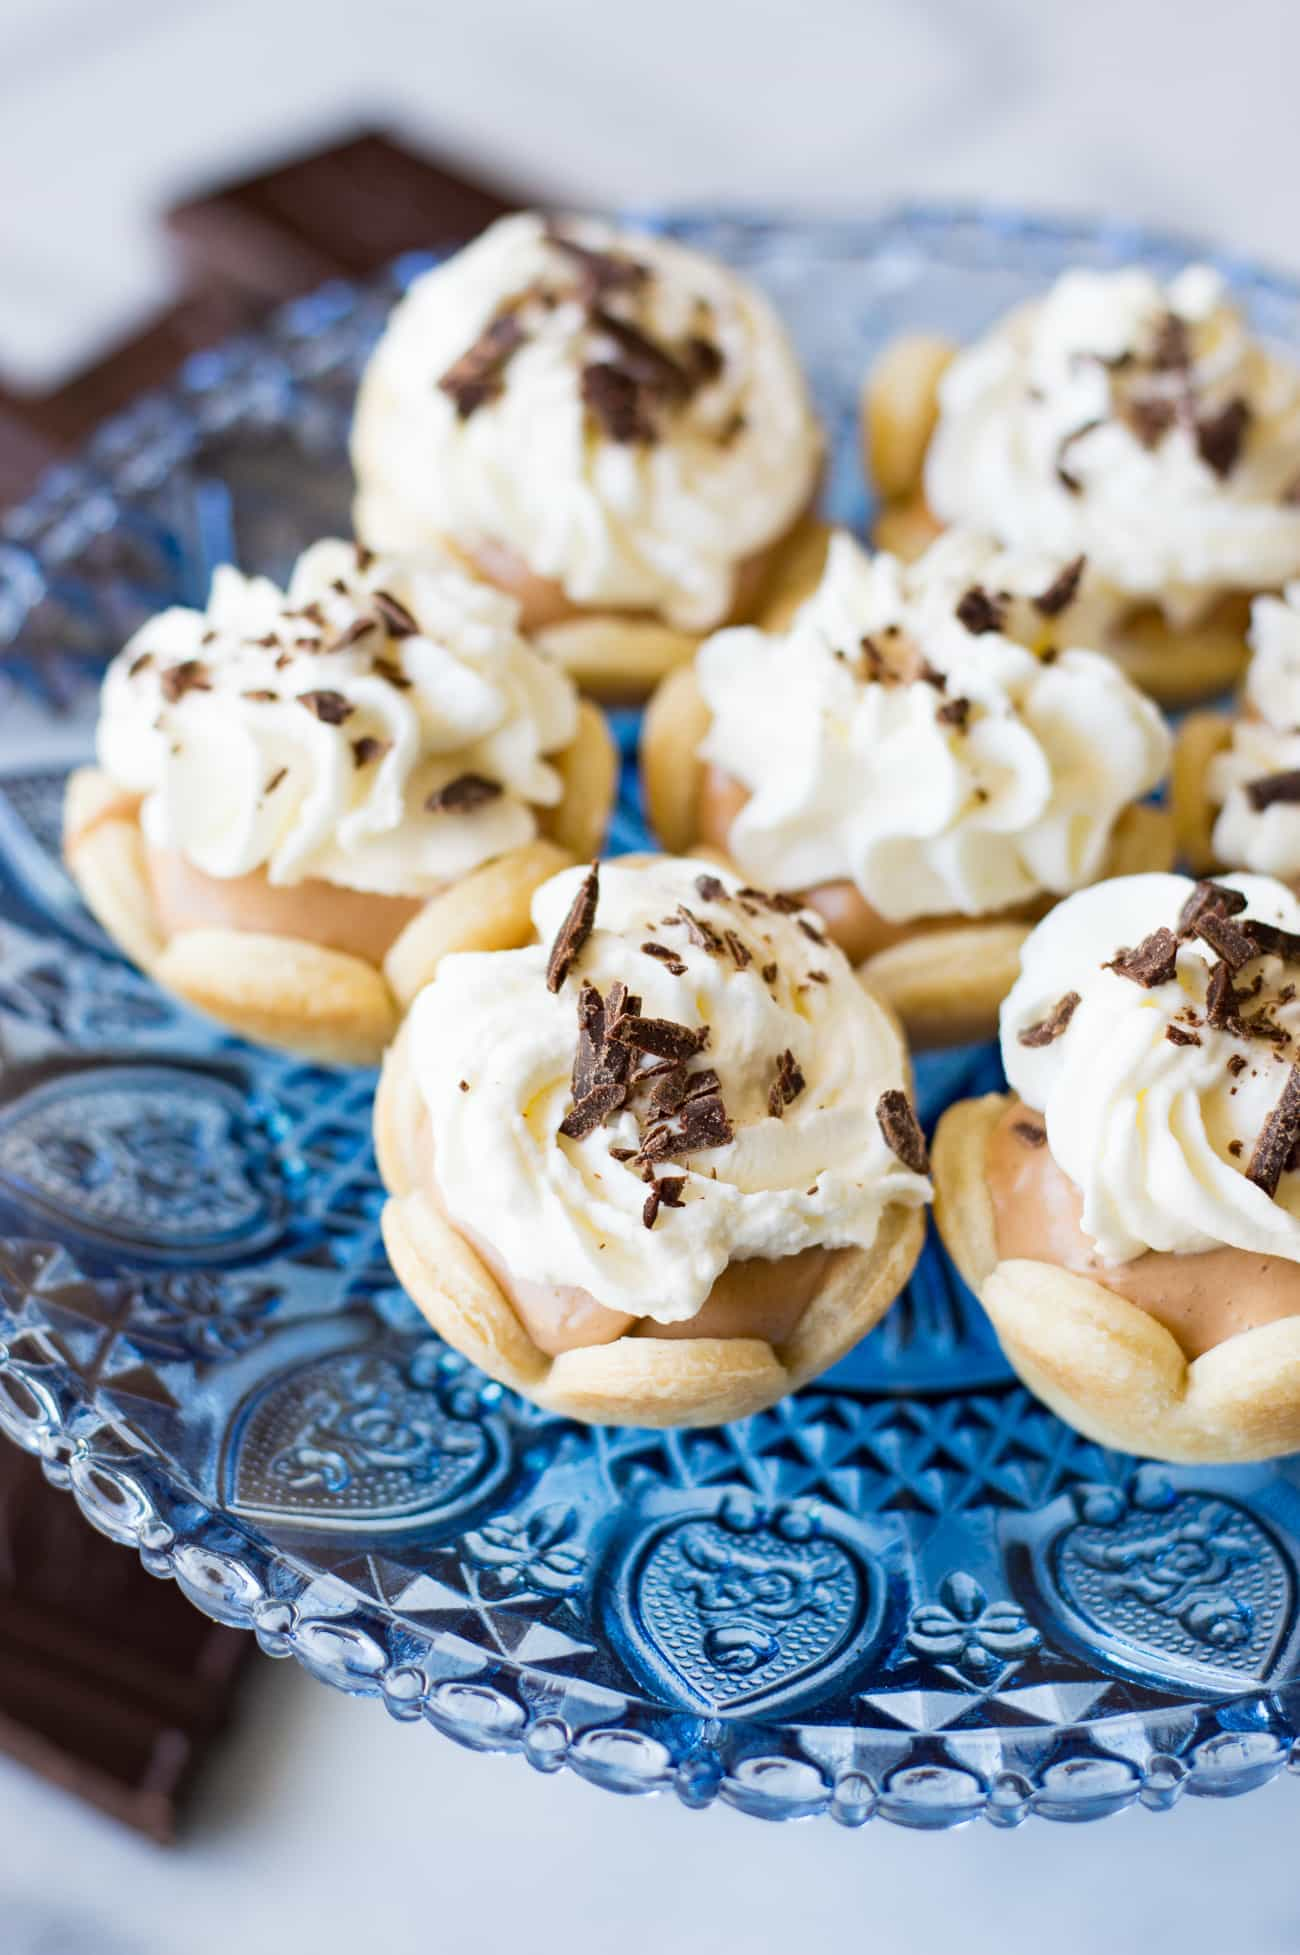 Mini French Silk Pies. Easy to make than you probably think and decadently DELICIOUS! Silky, creamy, chocolate bliss topped with homemade whipped cream. All in bite size mini pies!